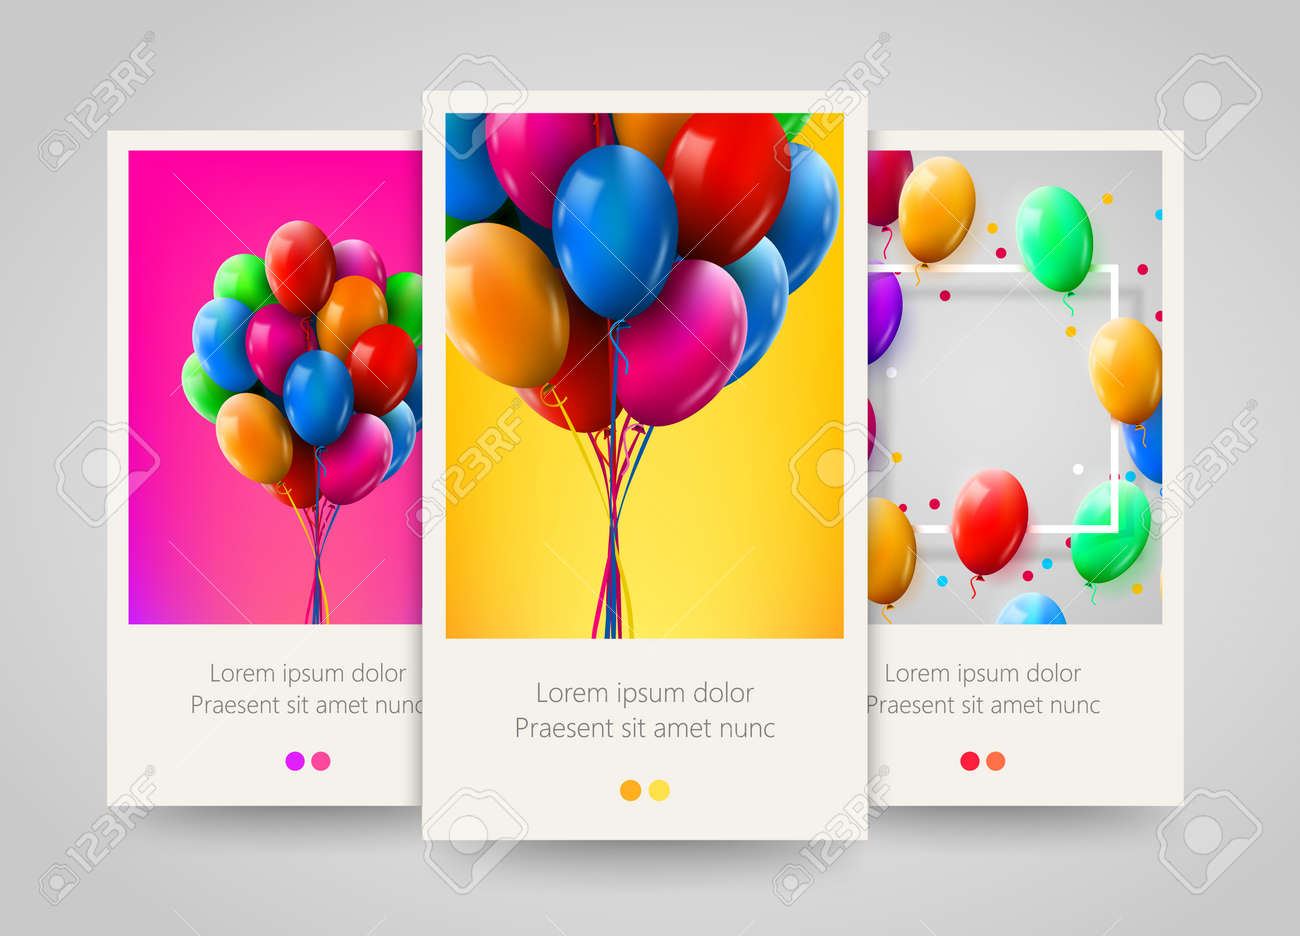 3d Realistic Colorful Bunch Of Birthday Balloons Flying For Party And Celebrations Poster Flyer